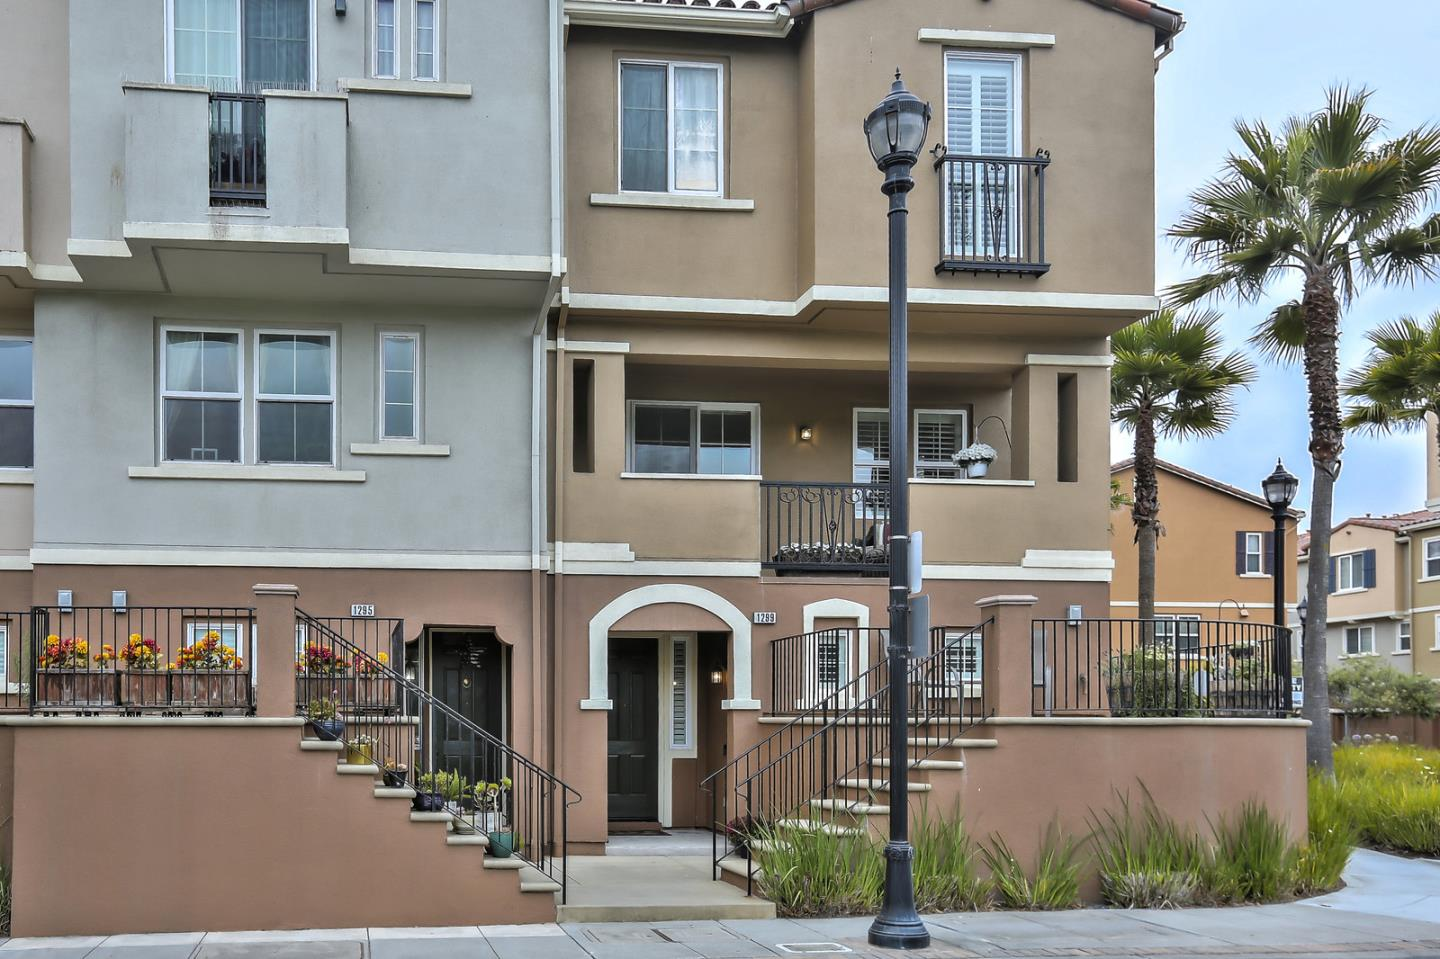 1299 Mission Road South San Francisco, CA 94080 - MLS #: ML81722291